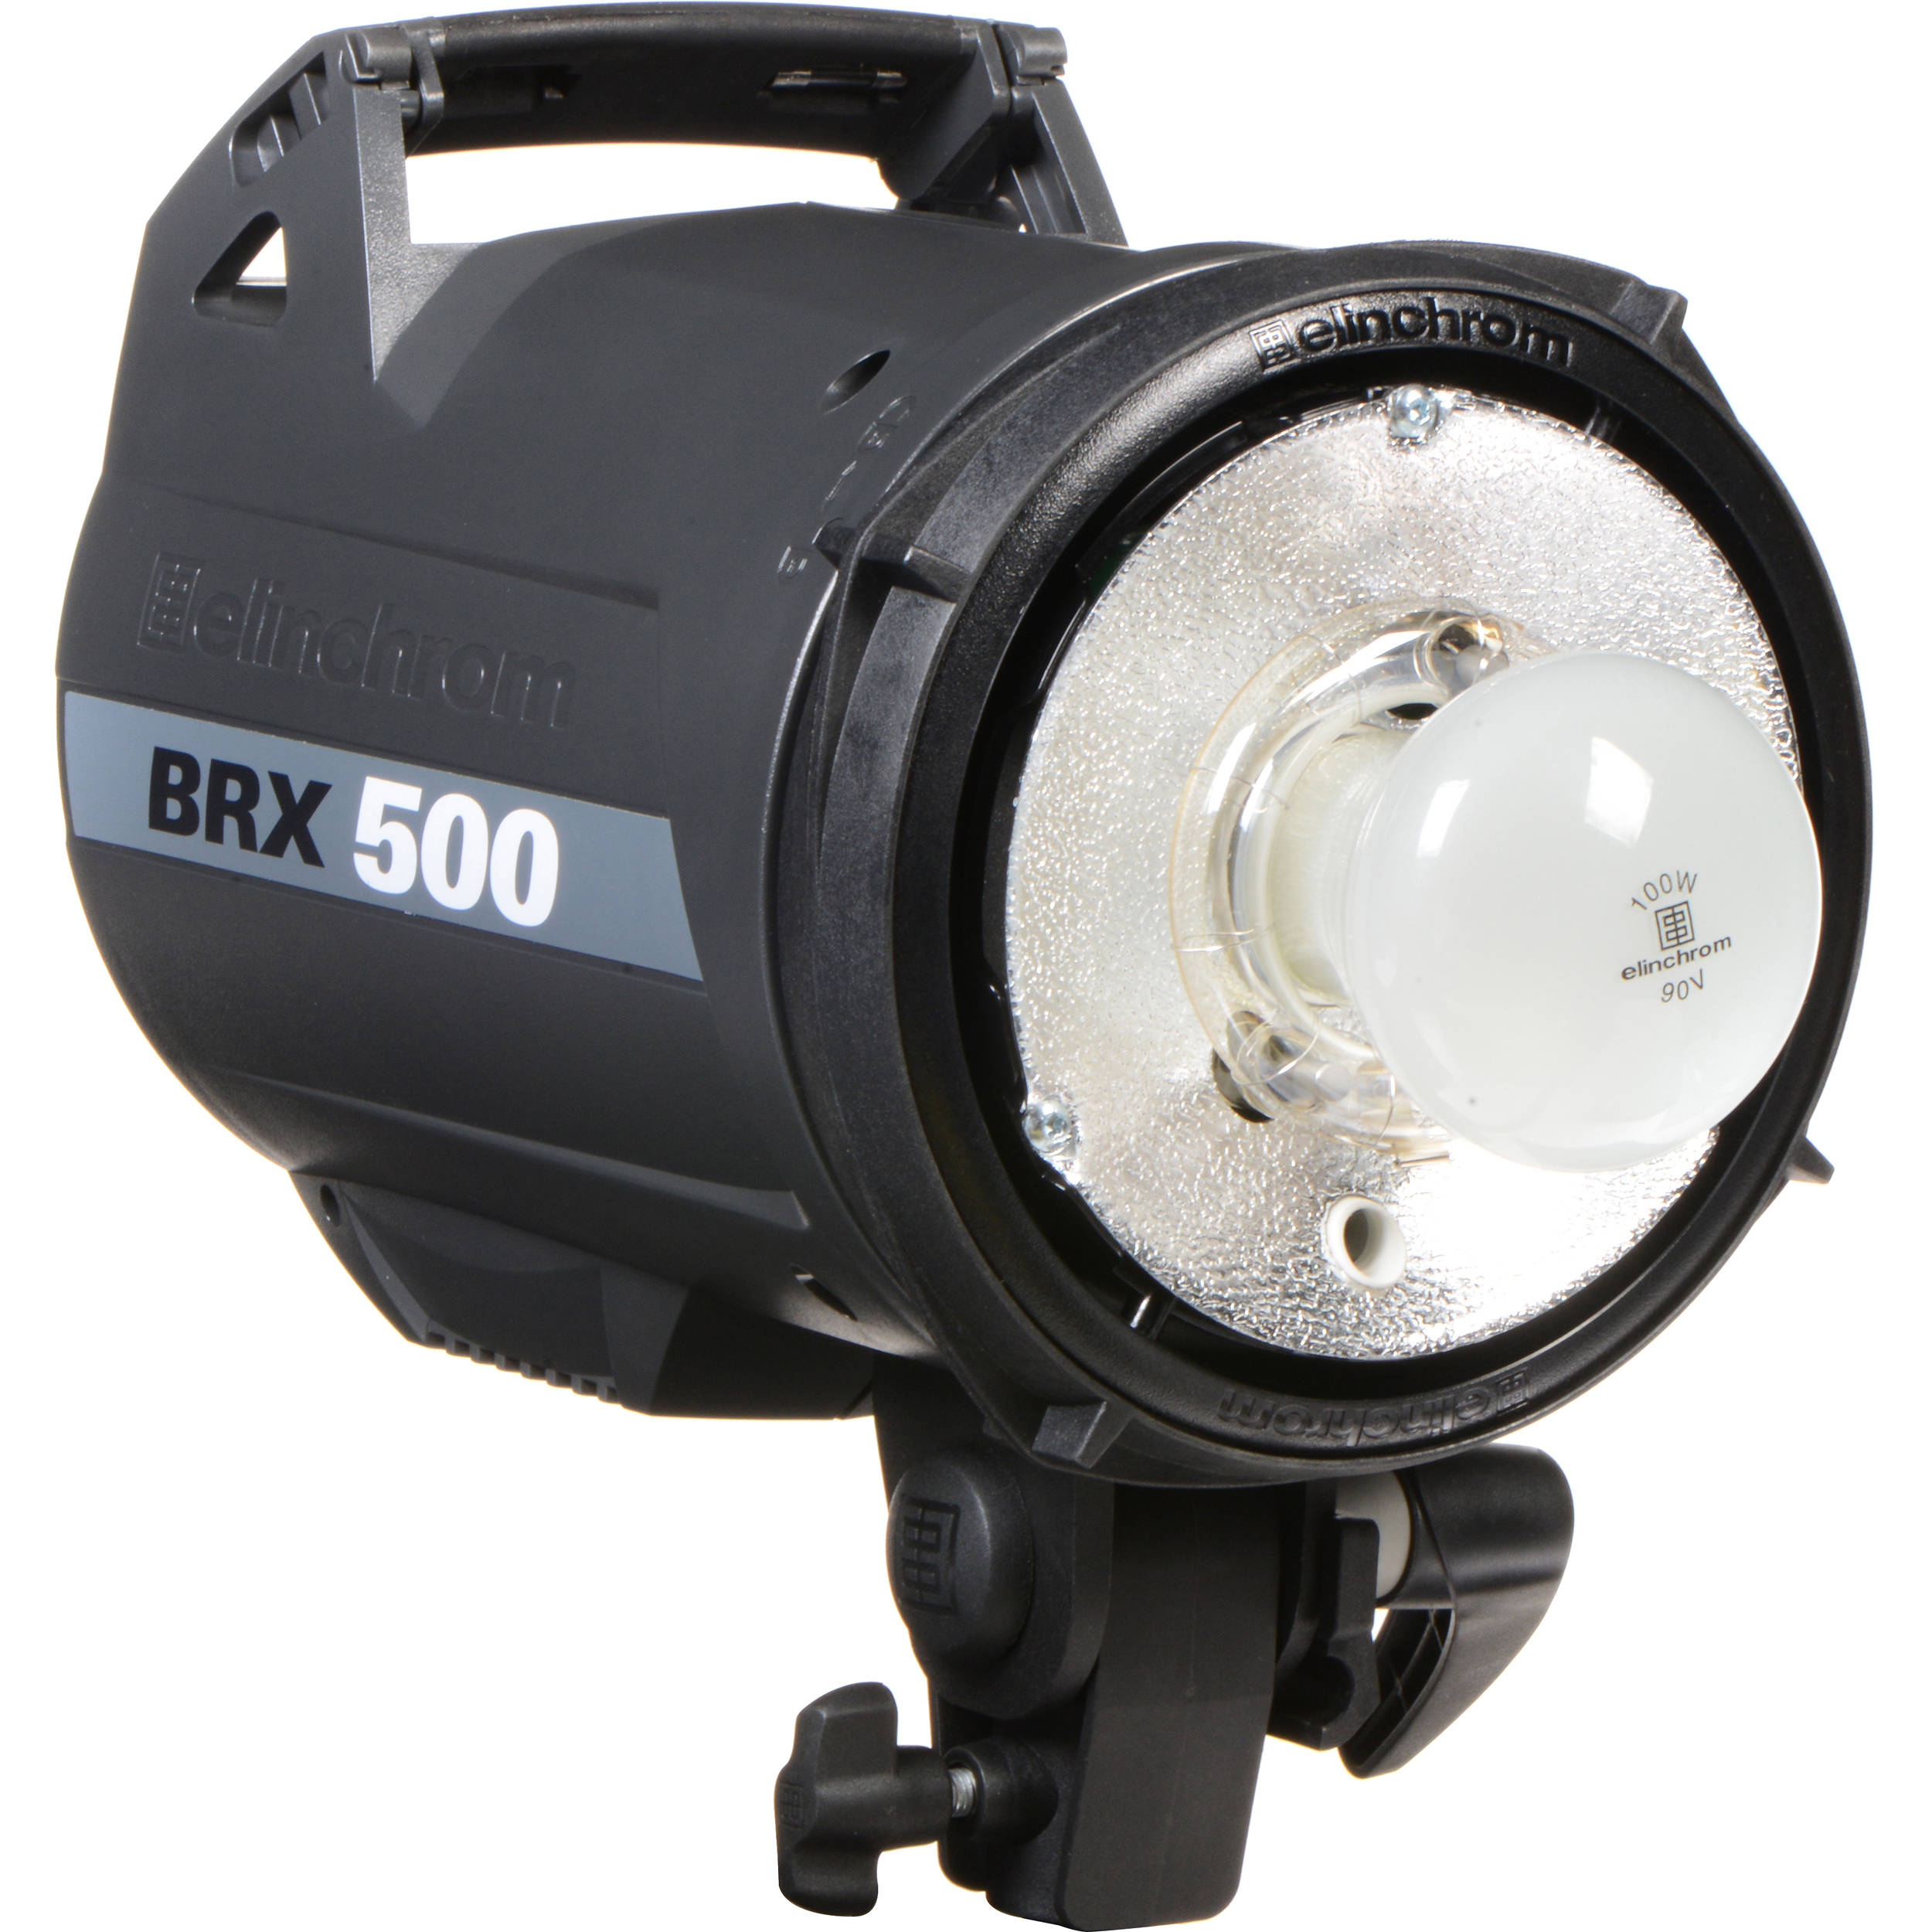 Elinchrom 500 Studio Lighting Kit: Elinchrom BRX 500 Monolight EL20441.1 B&H Photo Video